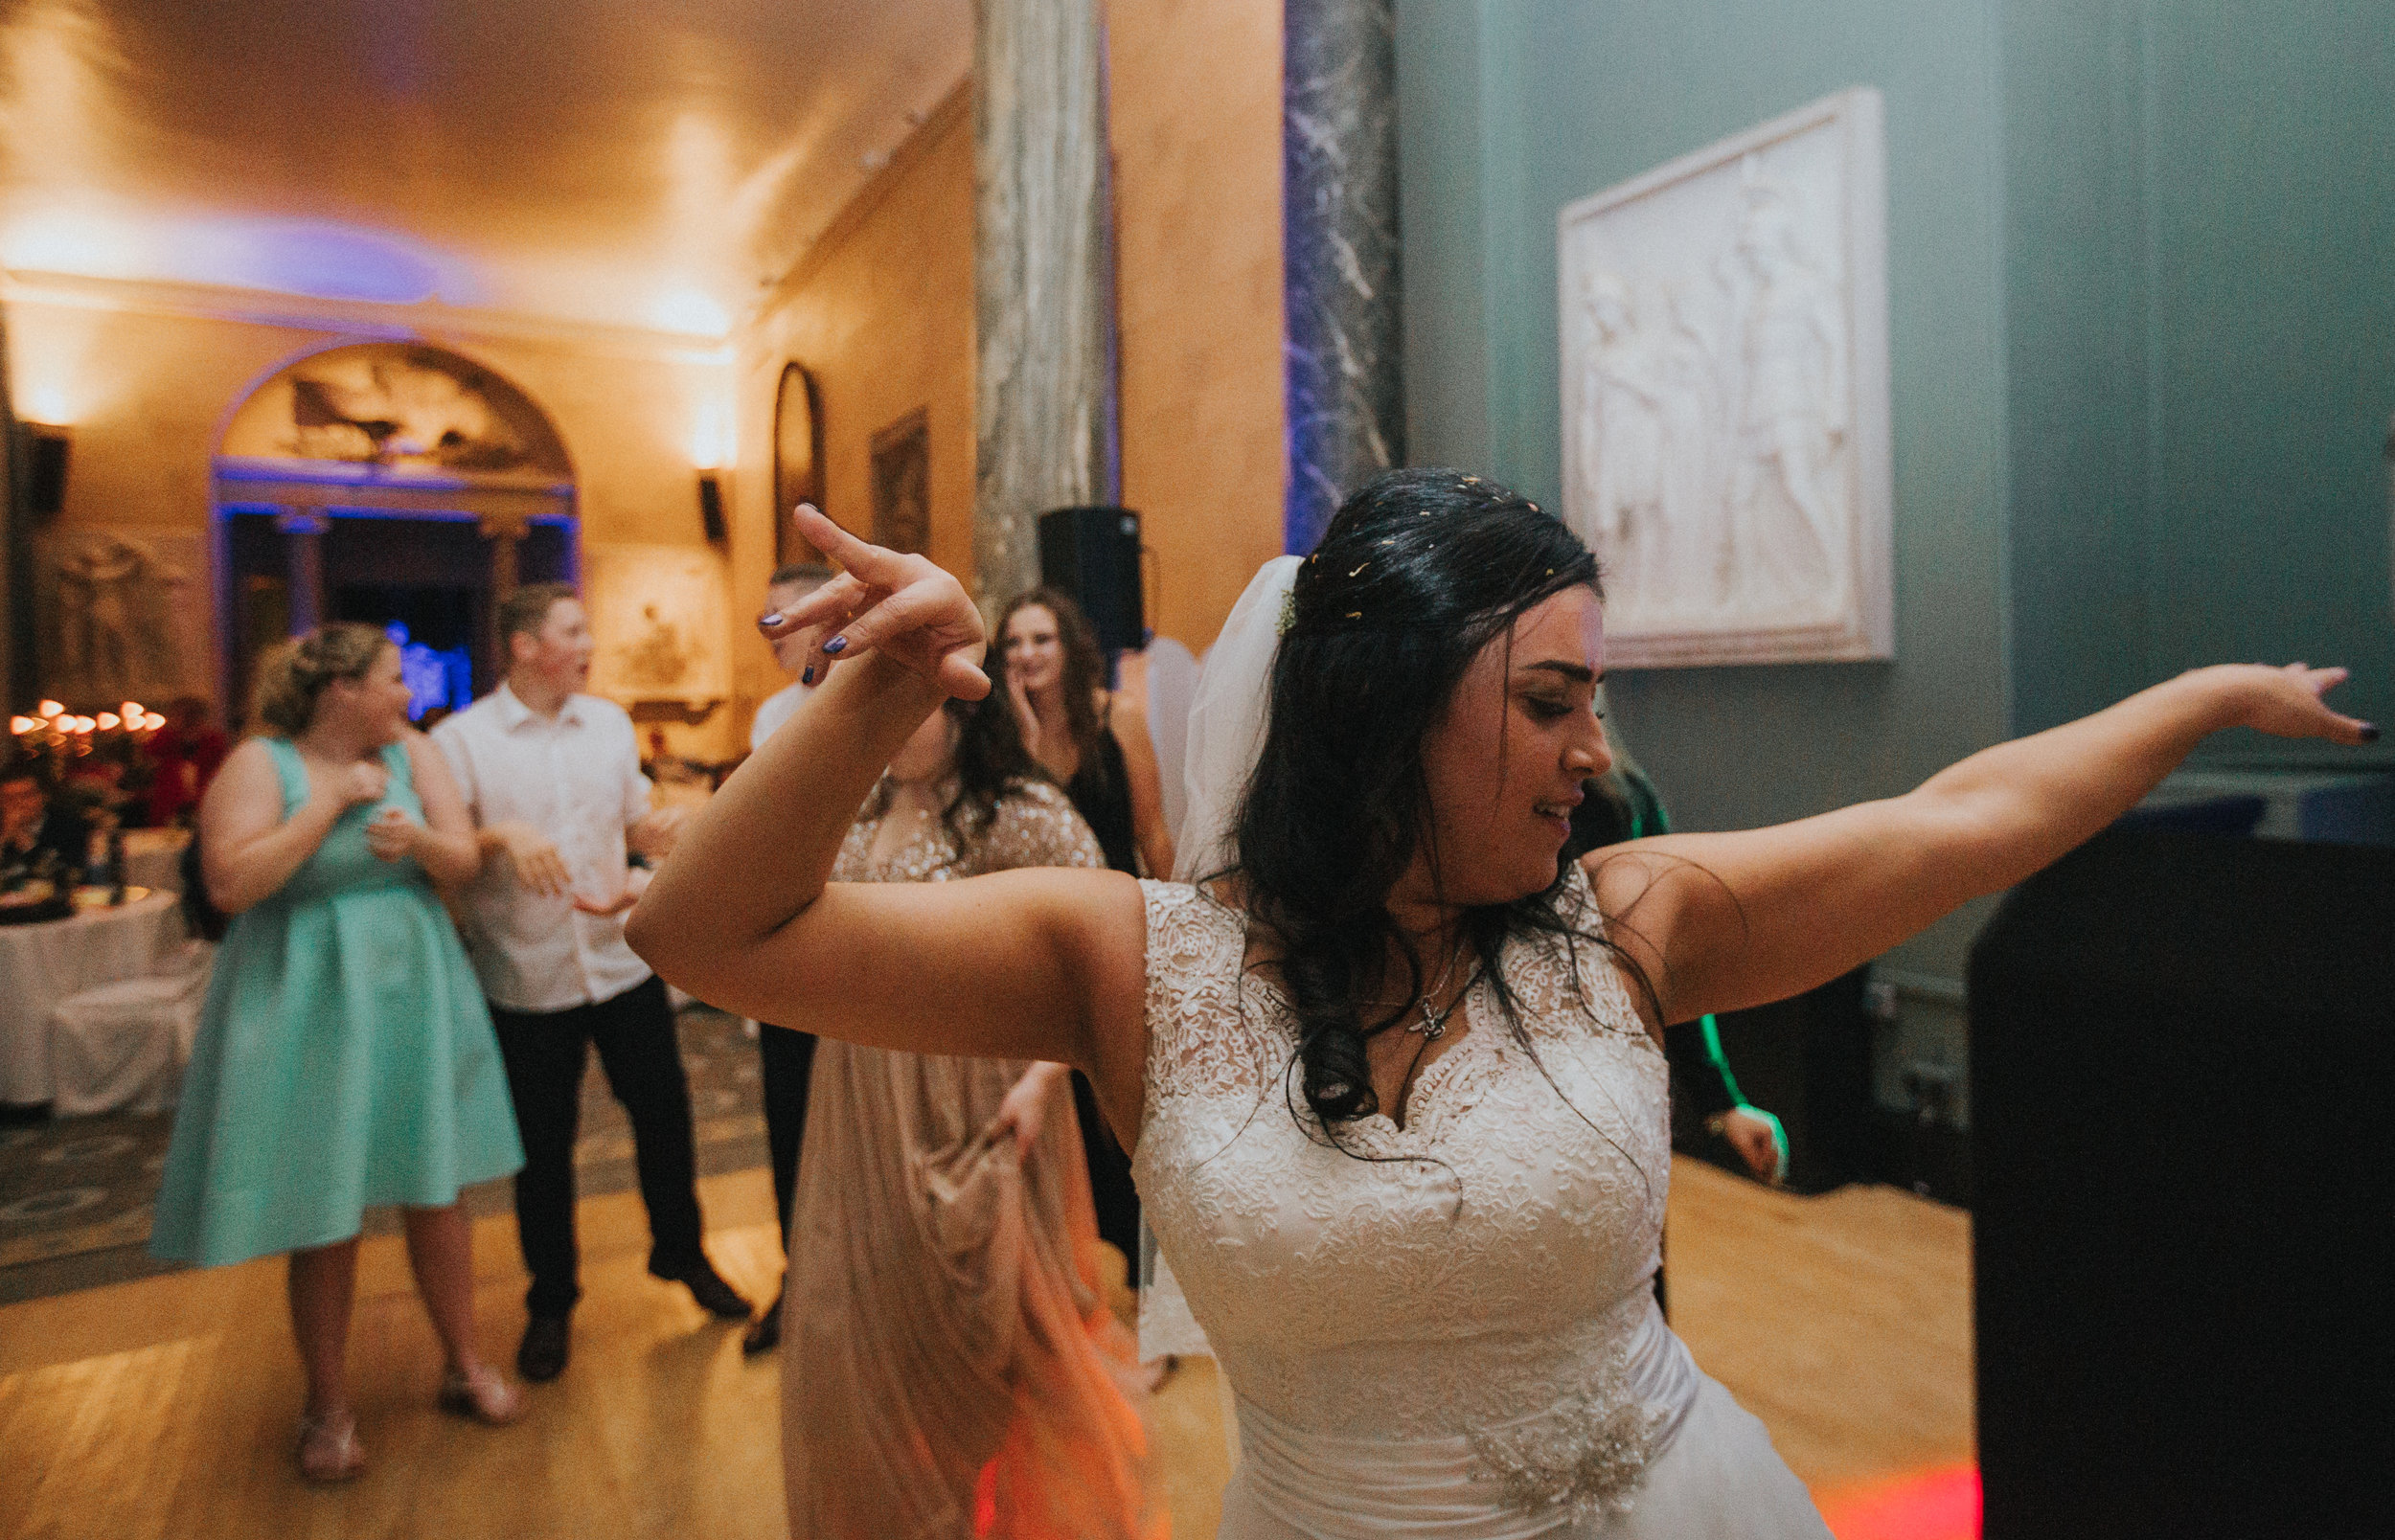 london-bedfordshire-uk-wedding-photography-woburn-sculpture-gallery-dancing-party-90